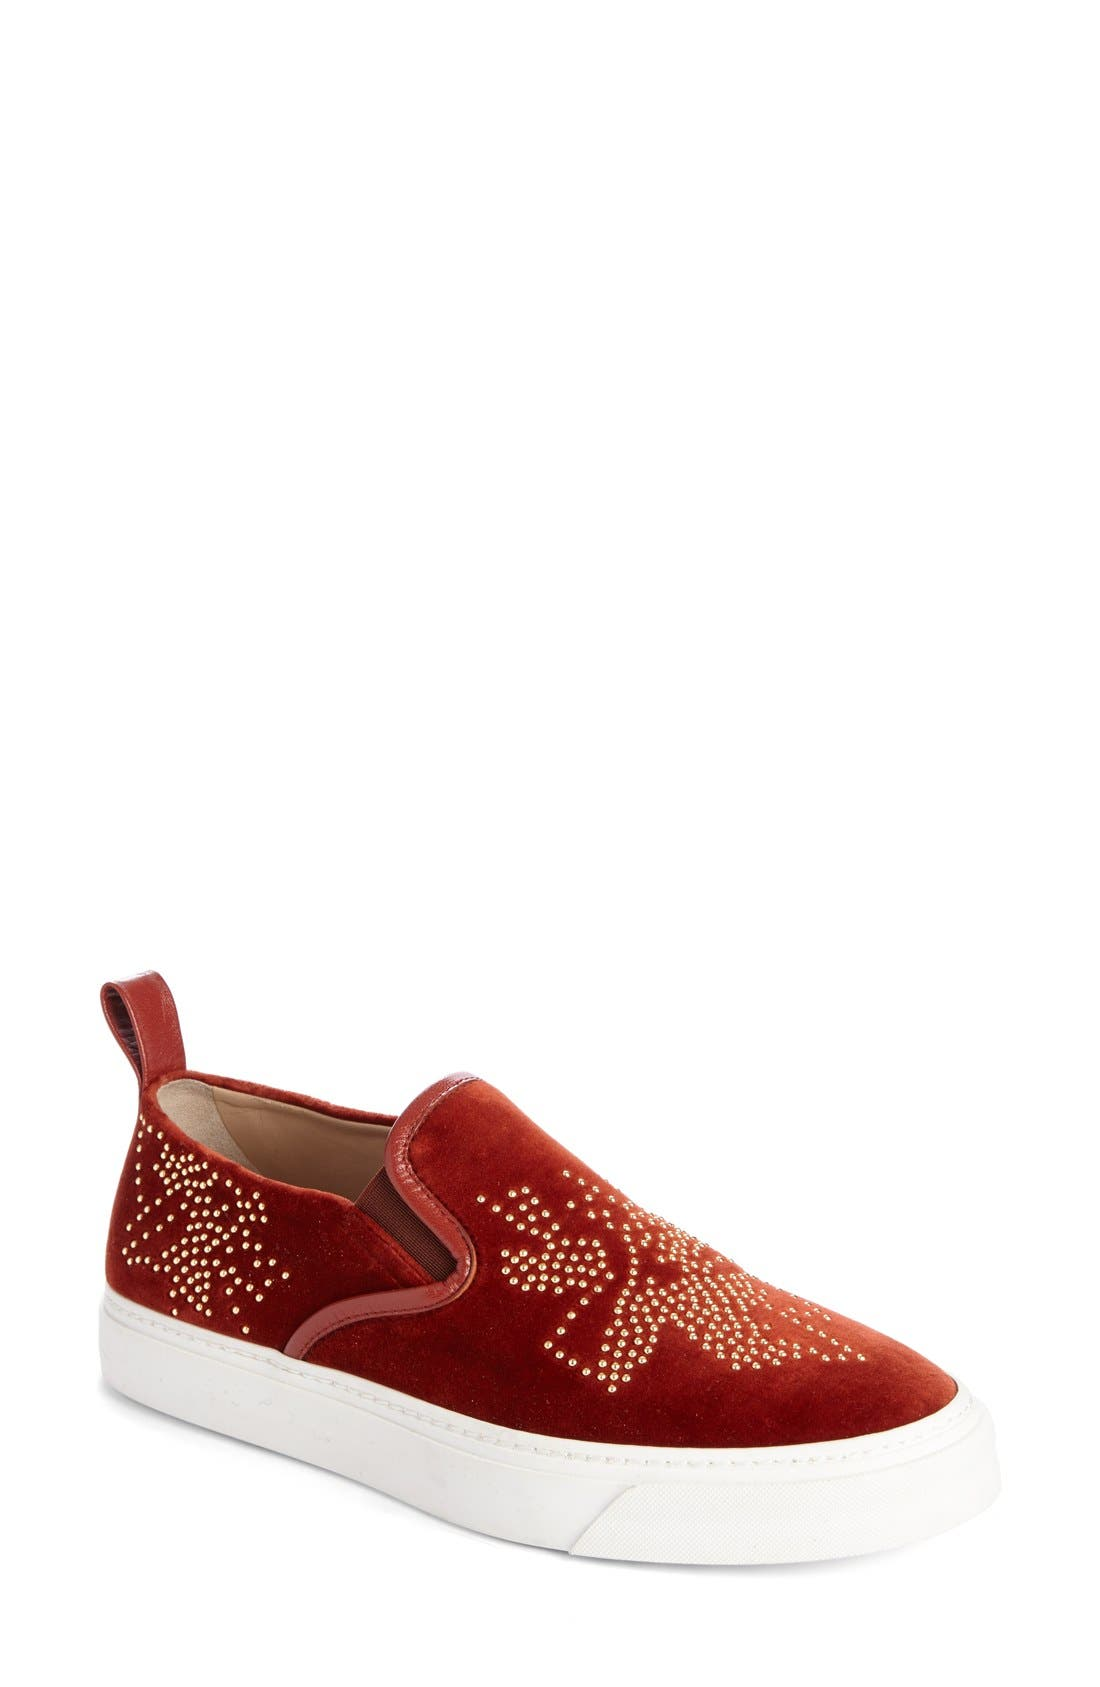 Alternate Image 1 Selected - Chloé 'Ivy' Studded Slip-On Sneaker (Women)